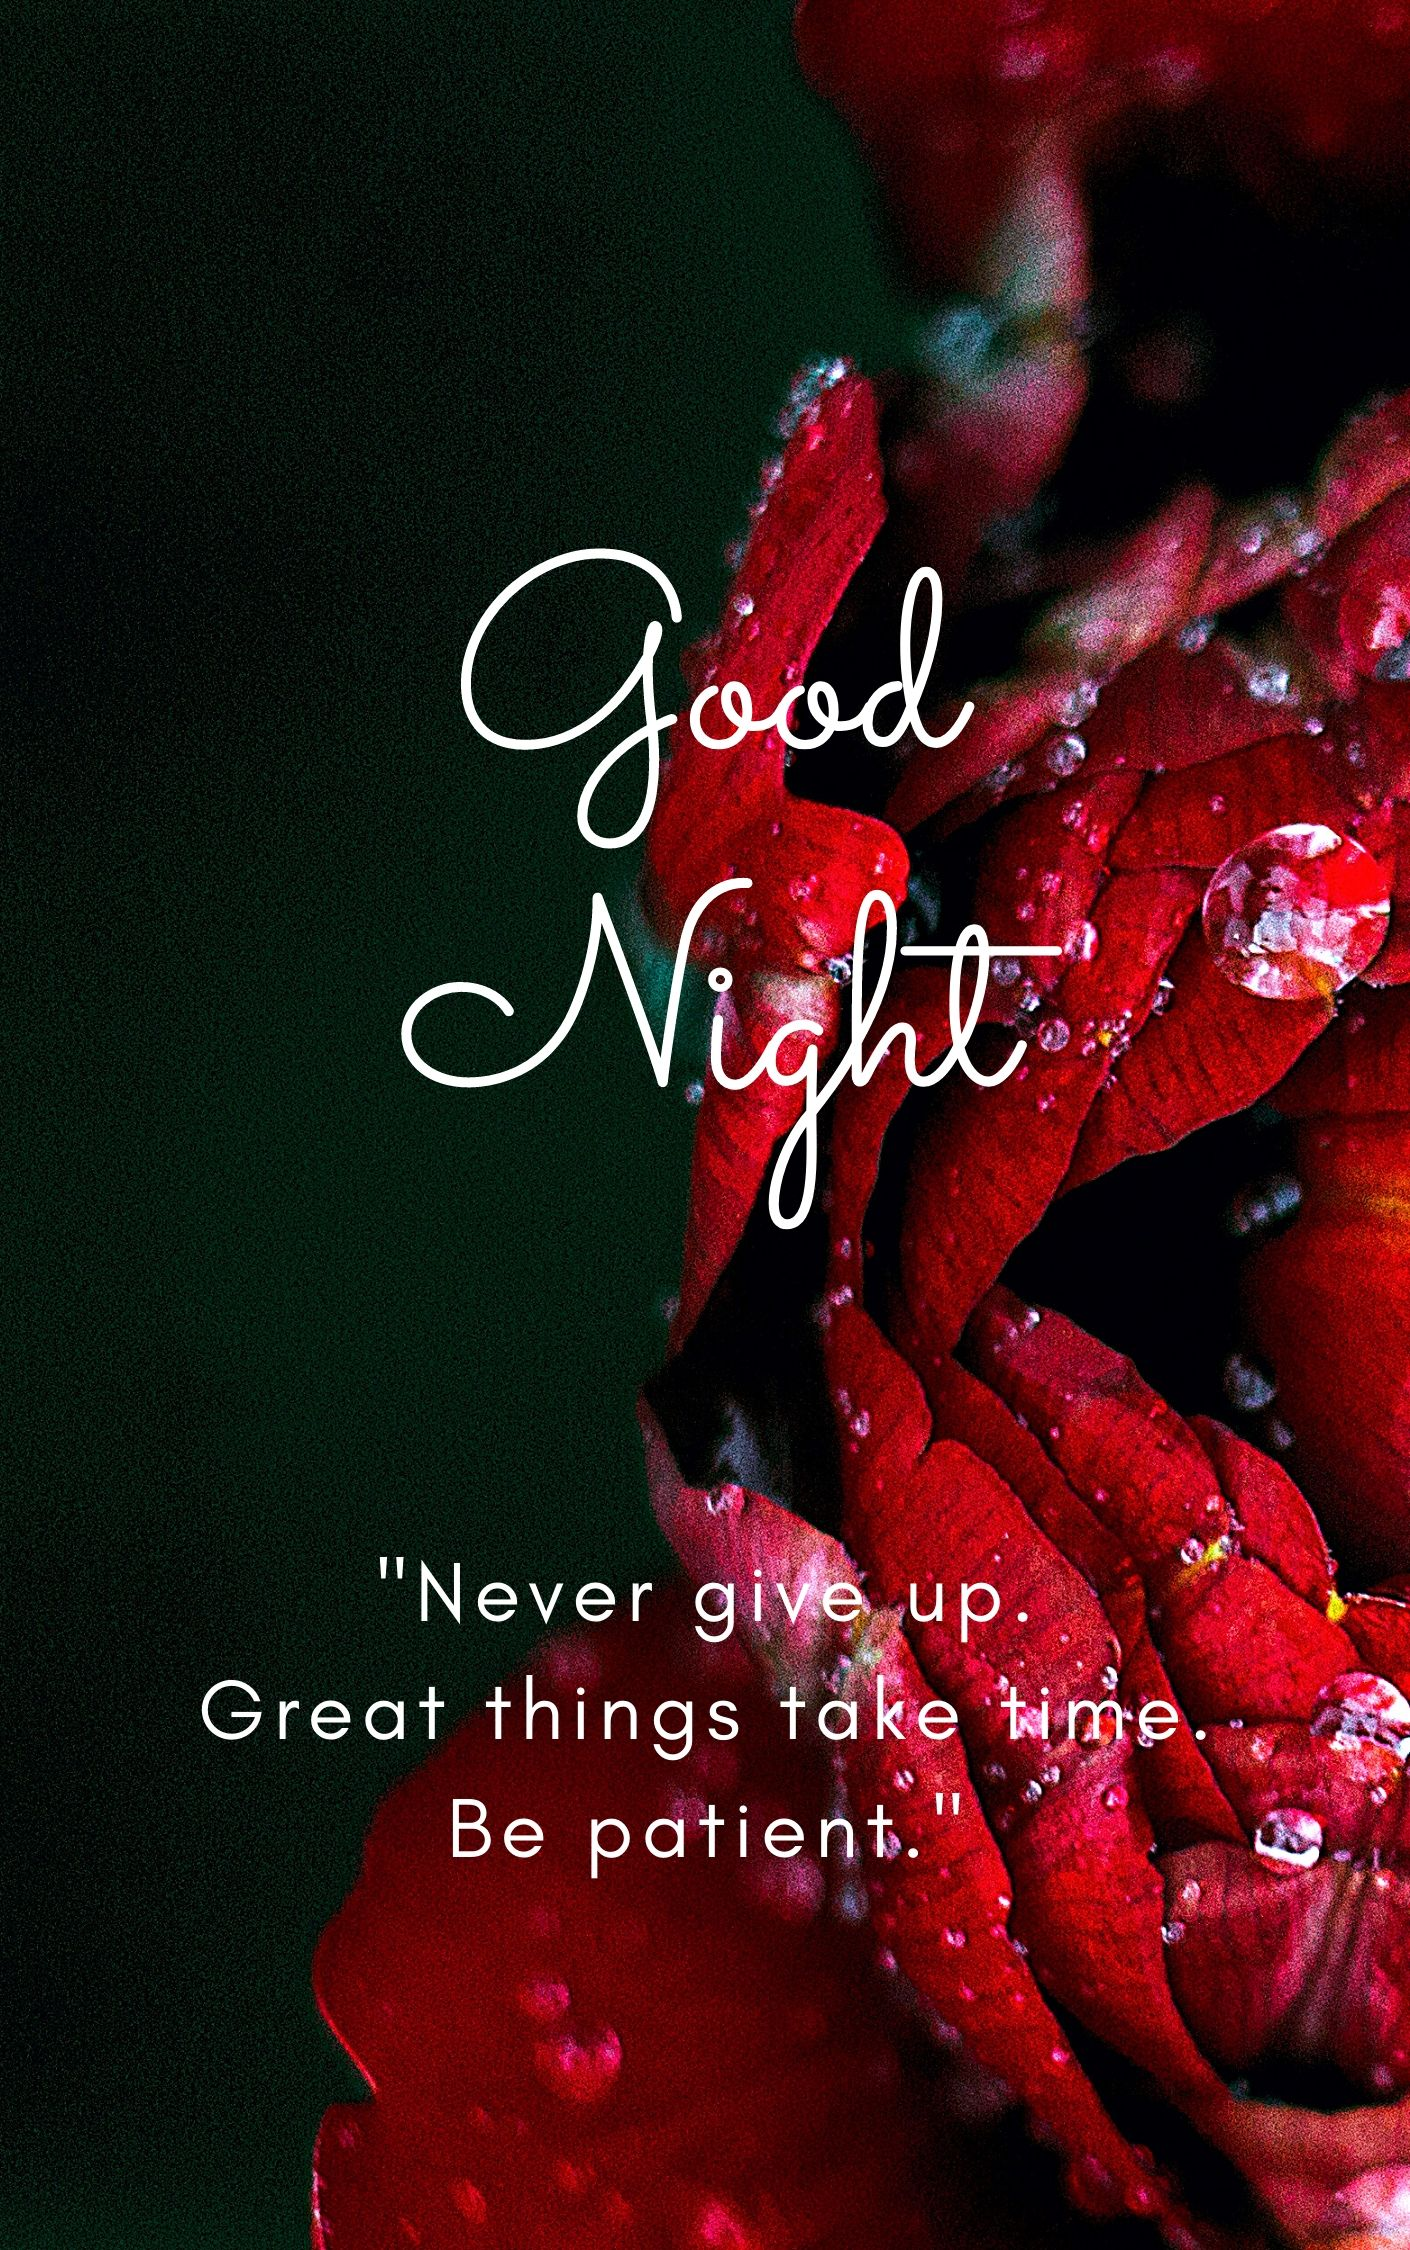 Good Night Quote Pic Never give up. Great things take time. Be patient full HD free download.